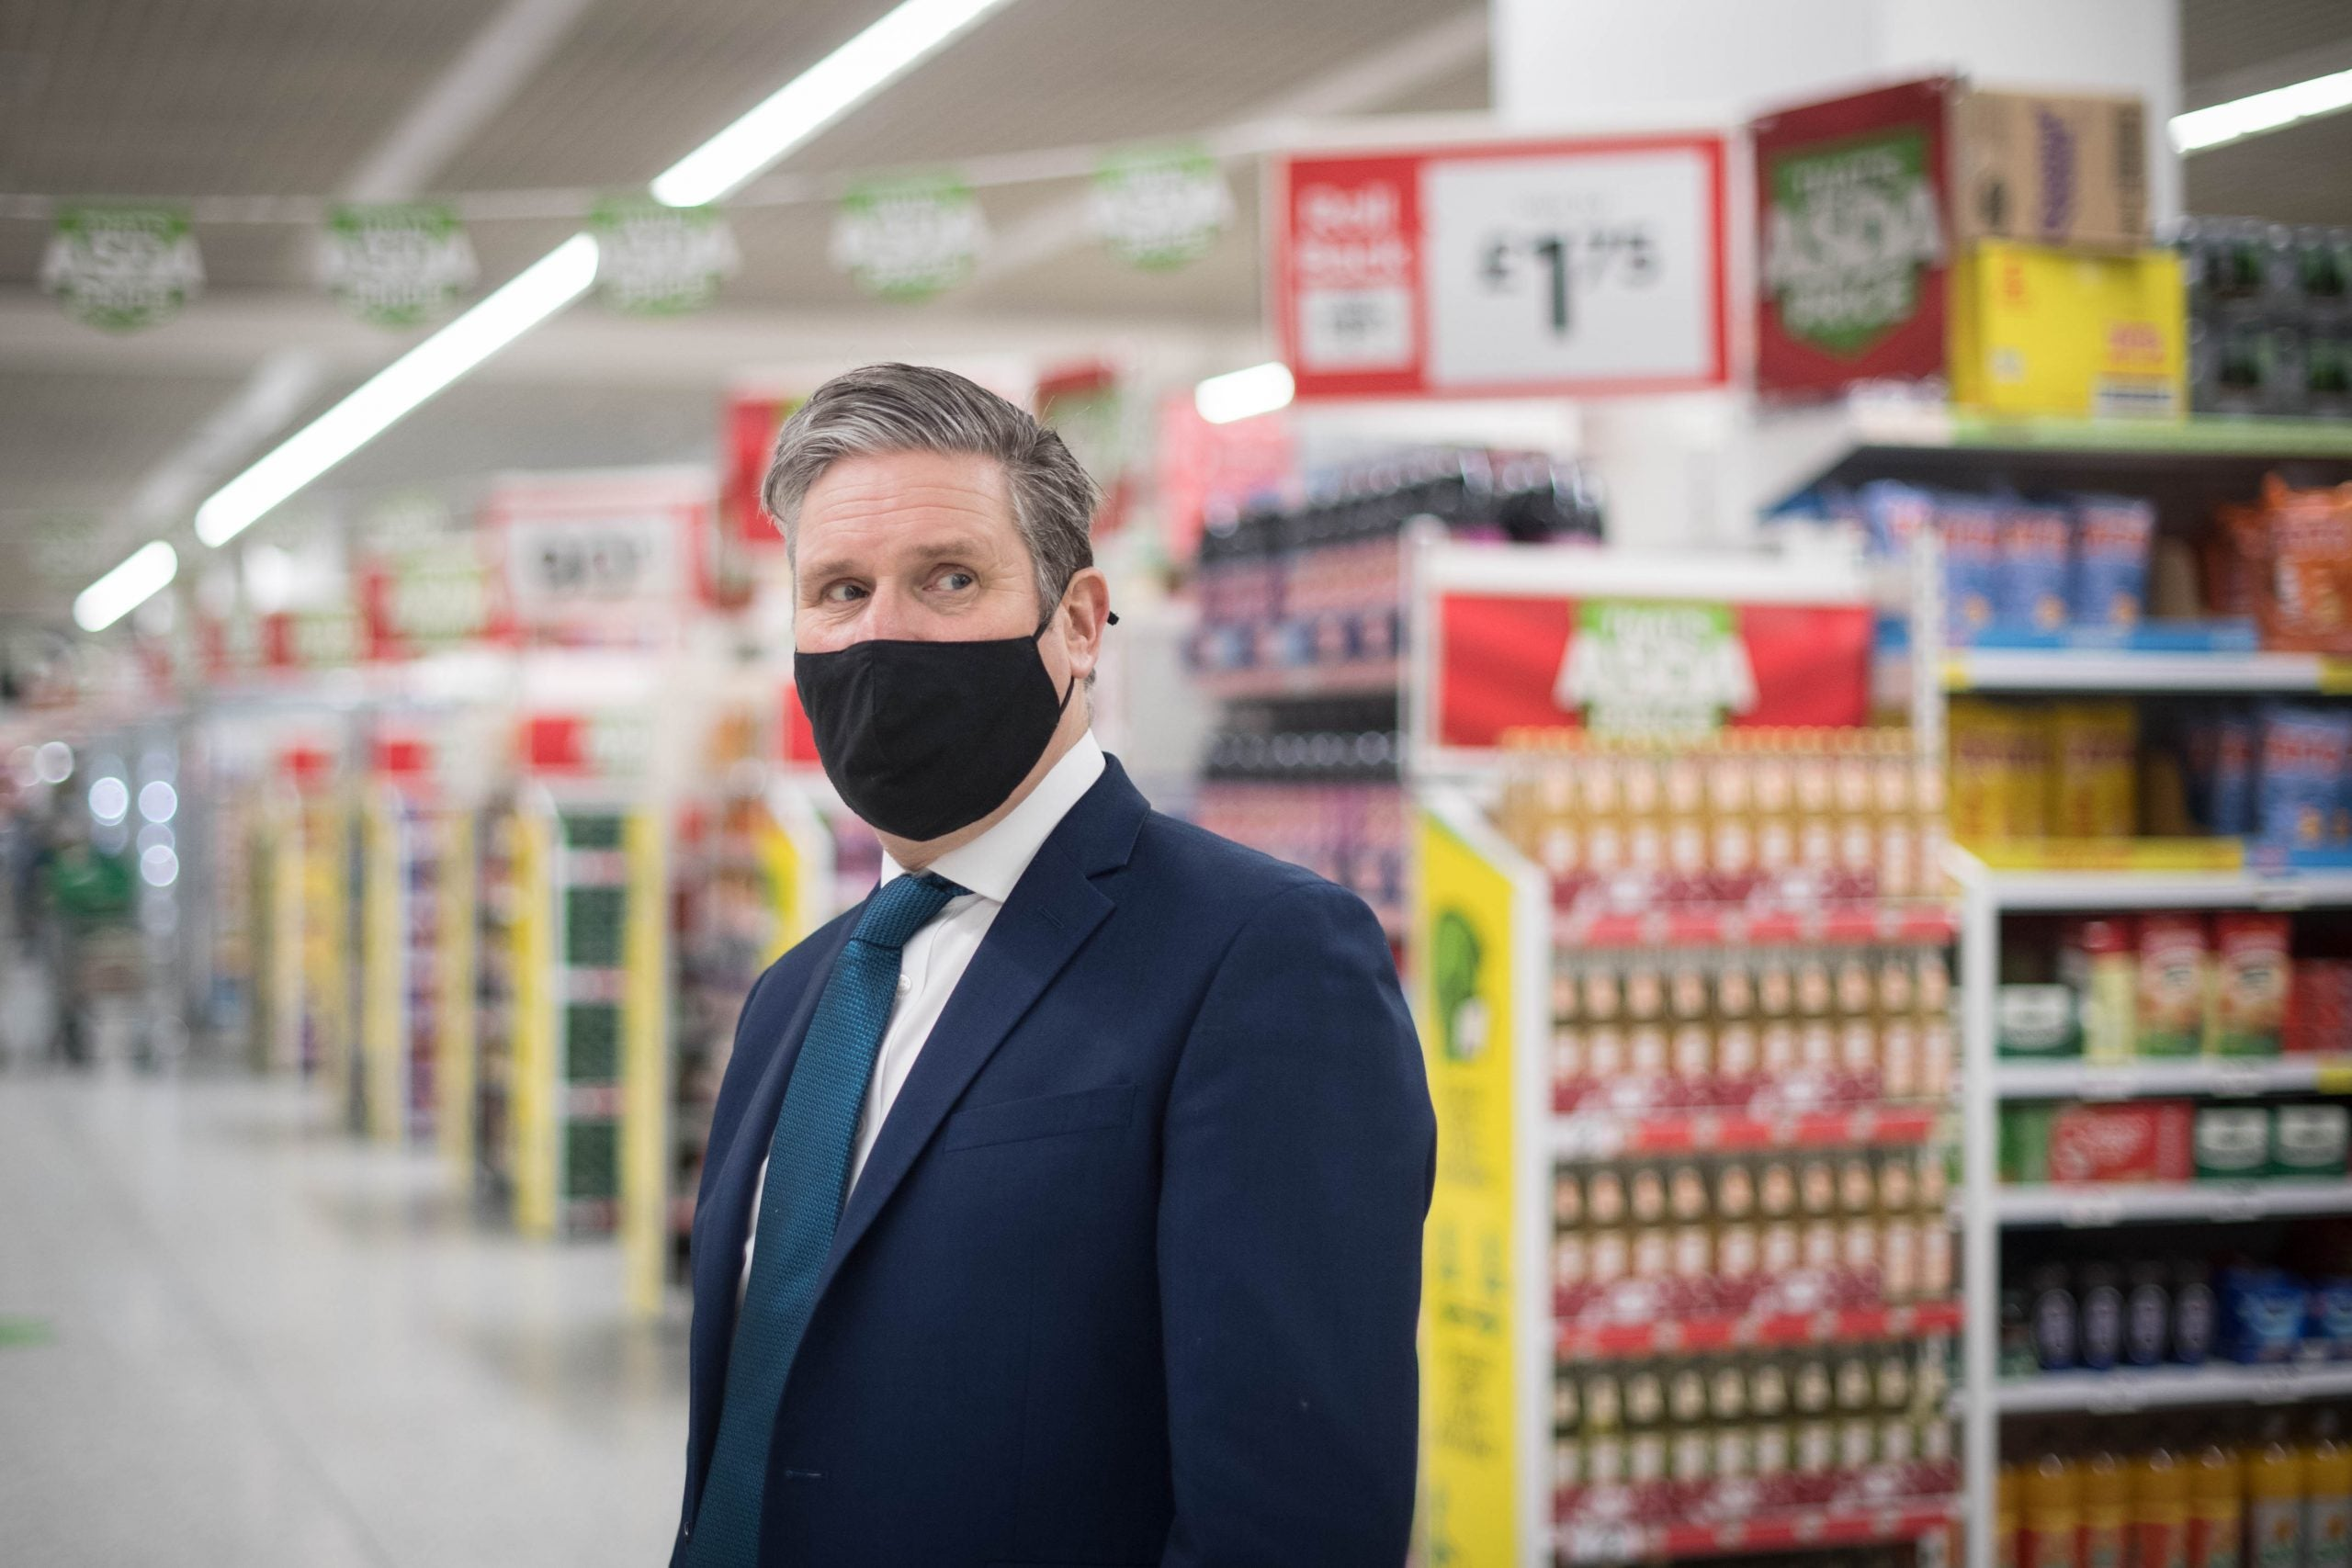 Should Labour be attacking the government over its pandemic response?